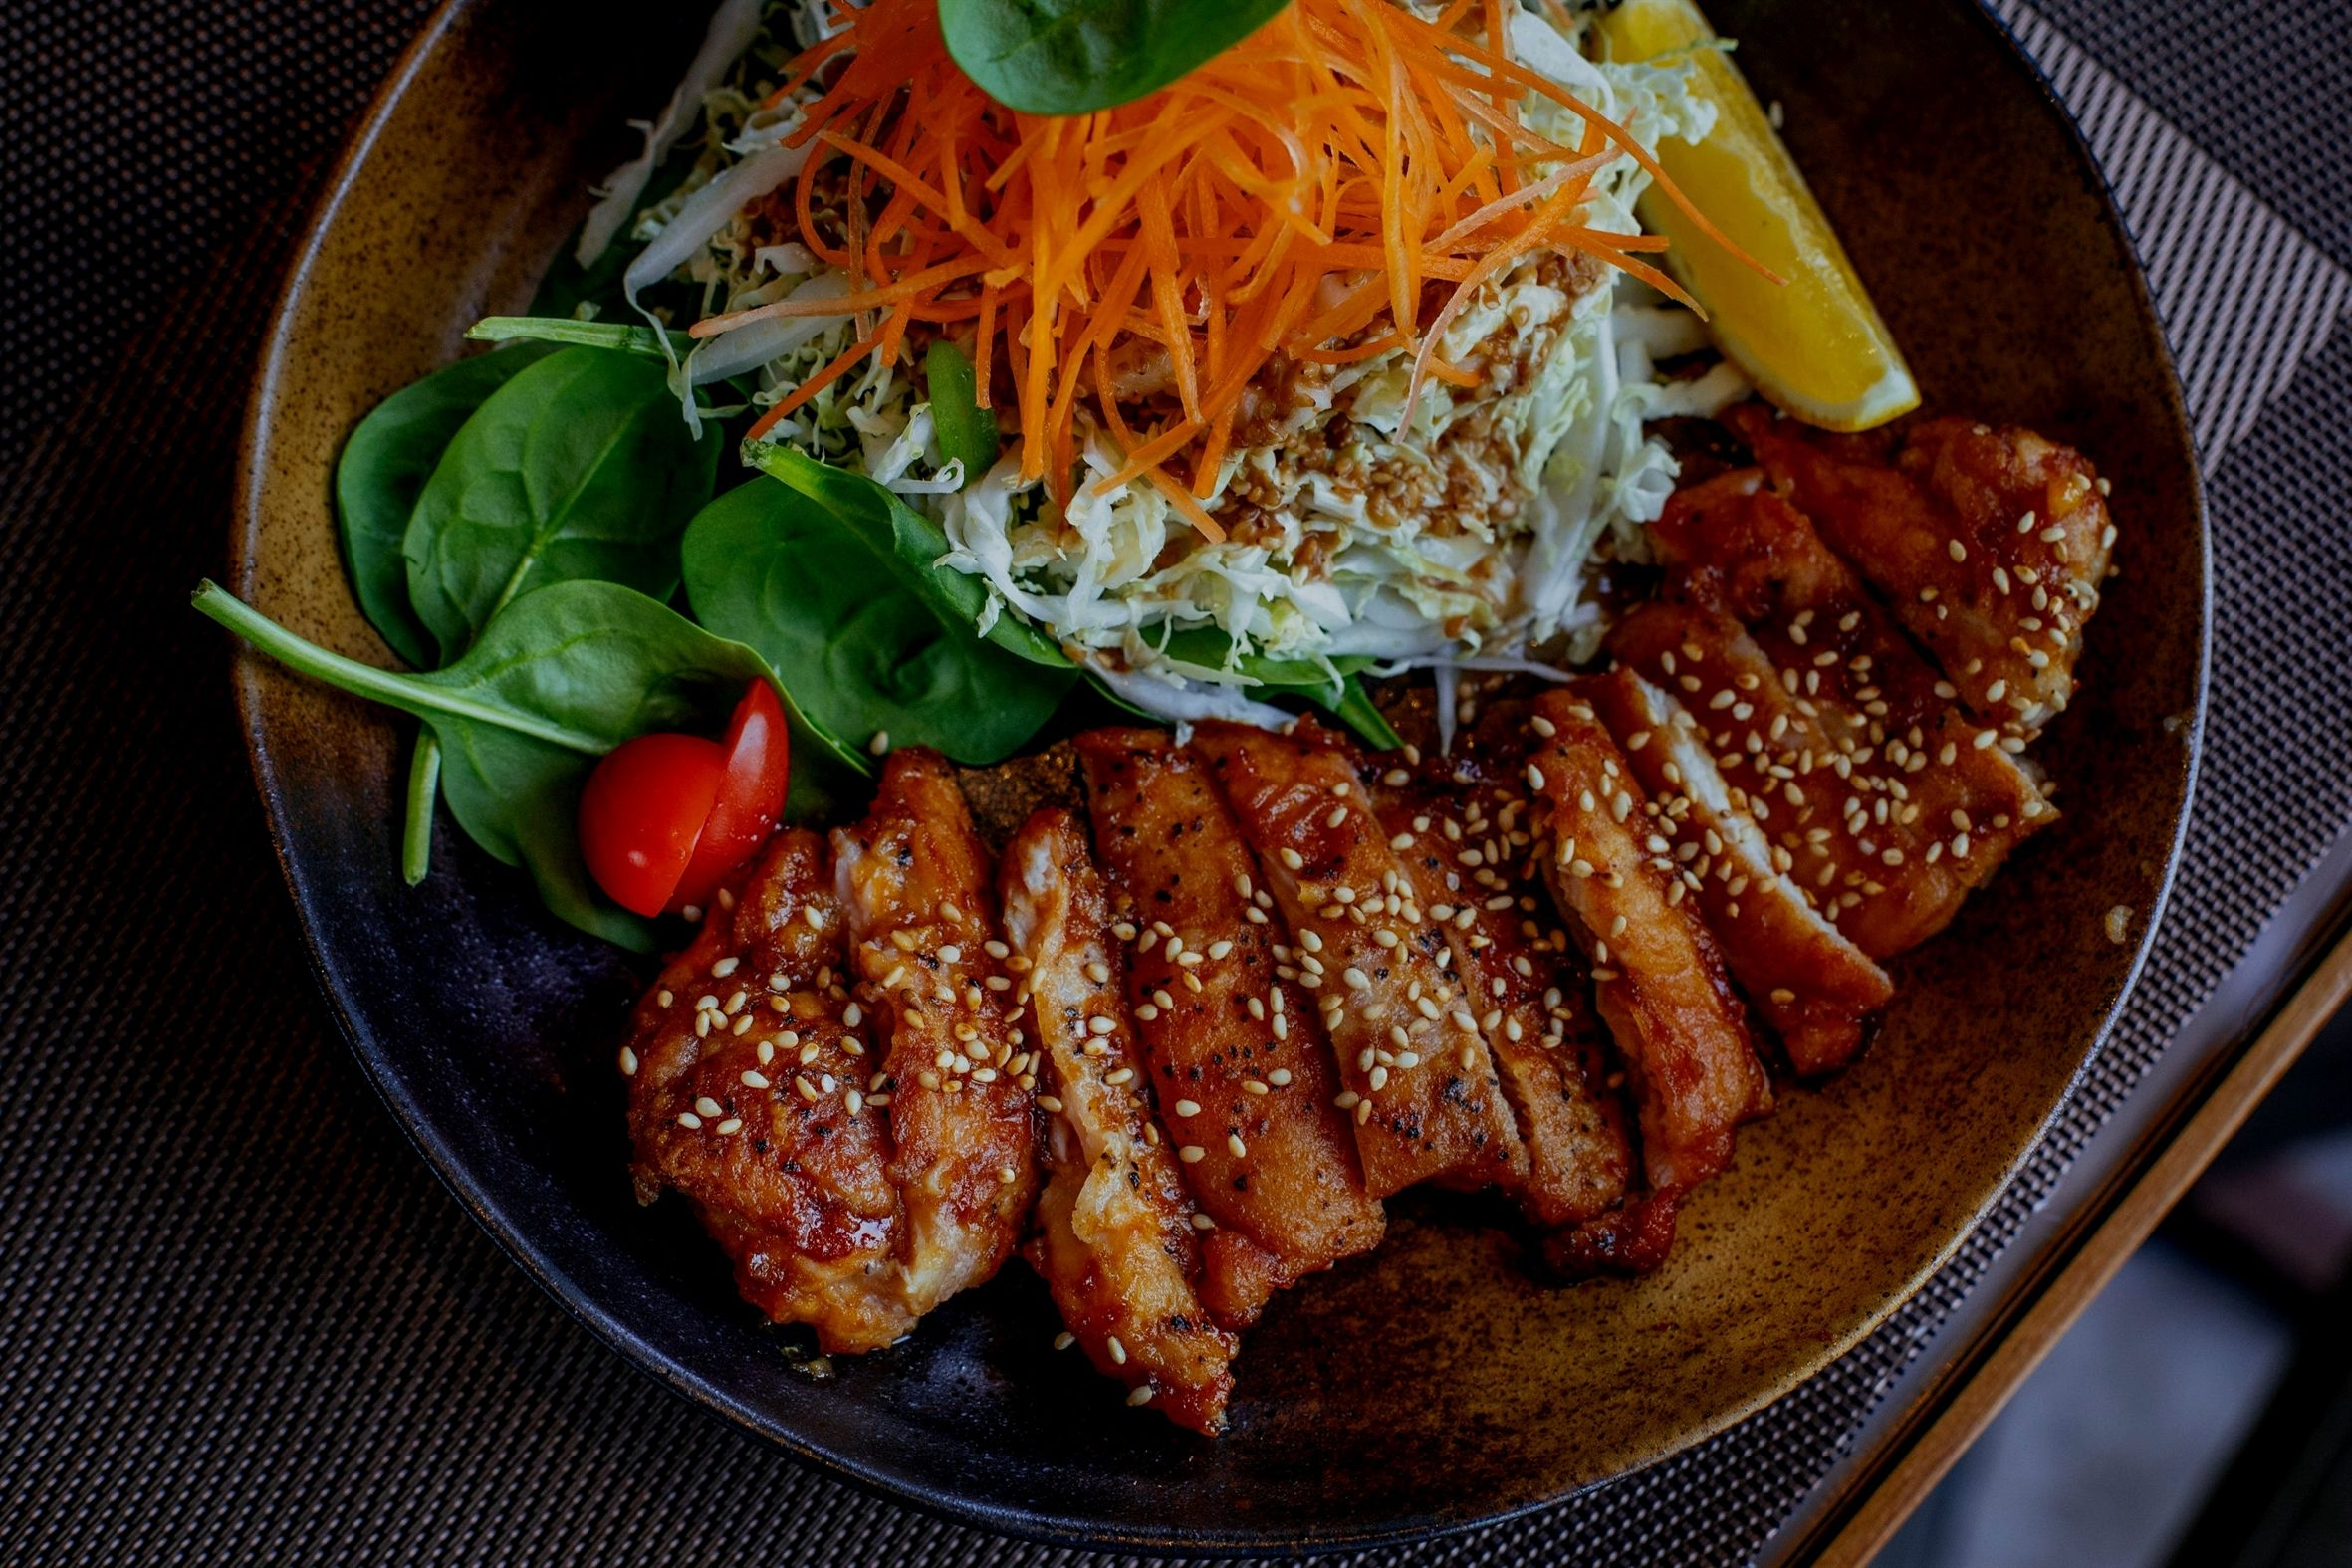 Koi Fish Food 478 20191129150551 59 About Food Fitness Food Channel Recipes Food Junkies Chinese Food 07087 Step 2 Play Foo In 2020 Food Sesame Chicken Recipes